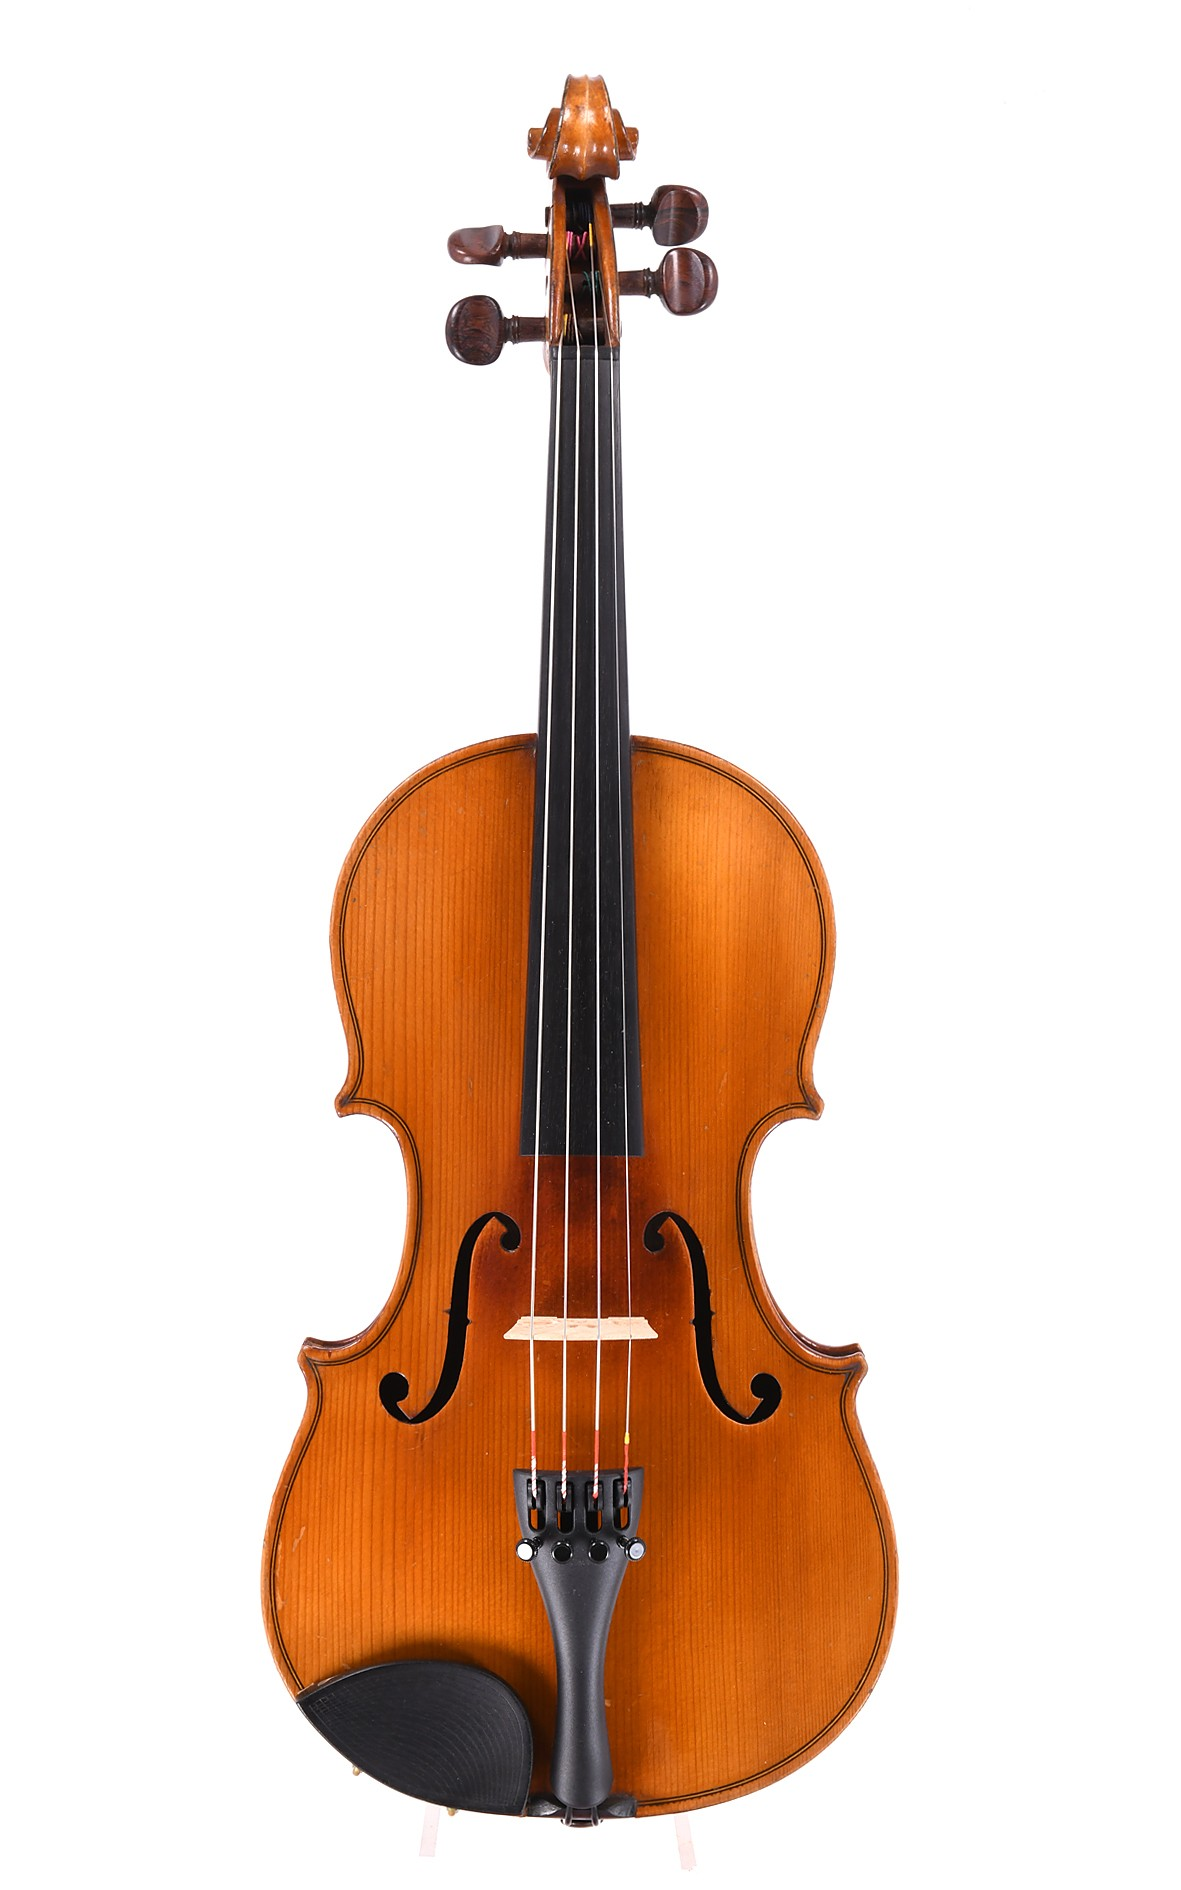 French JTL 3/4 violin - one piece top